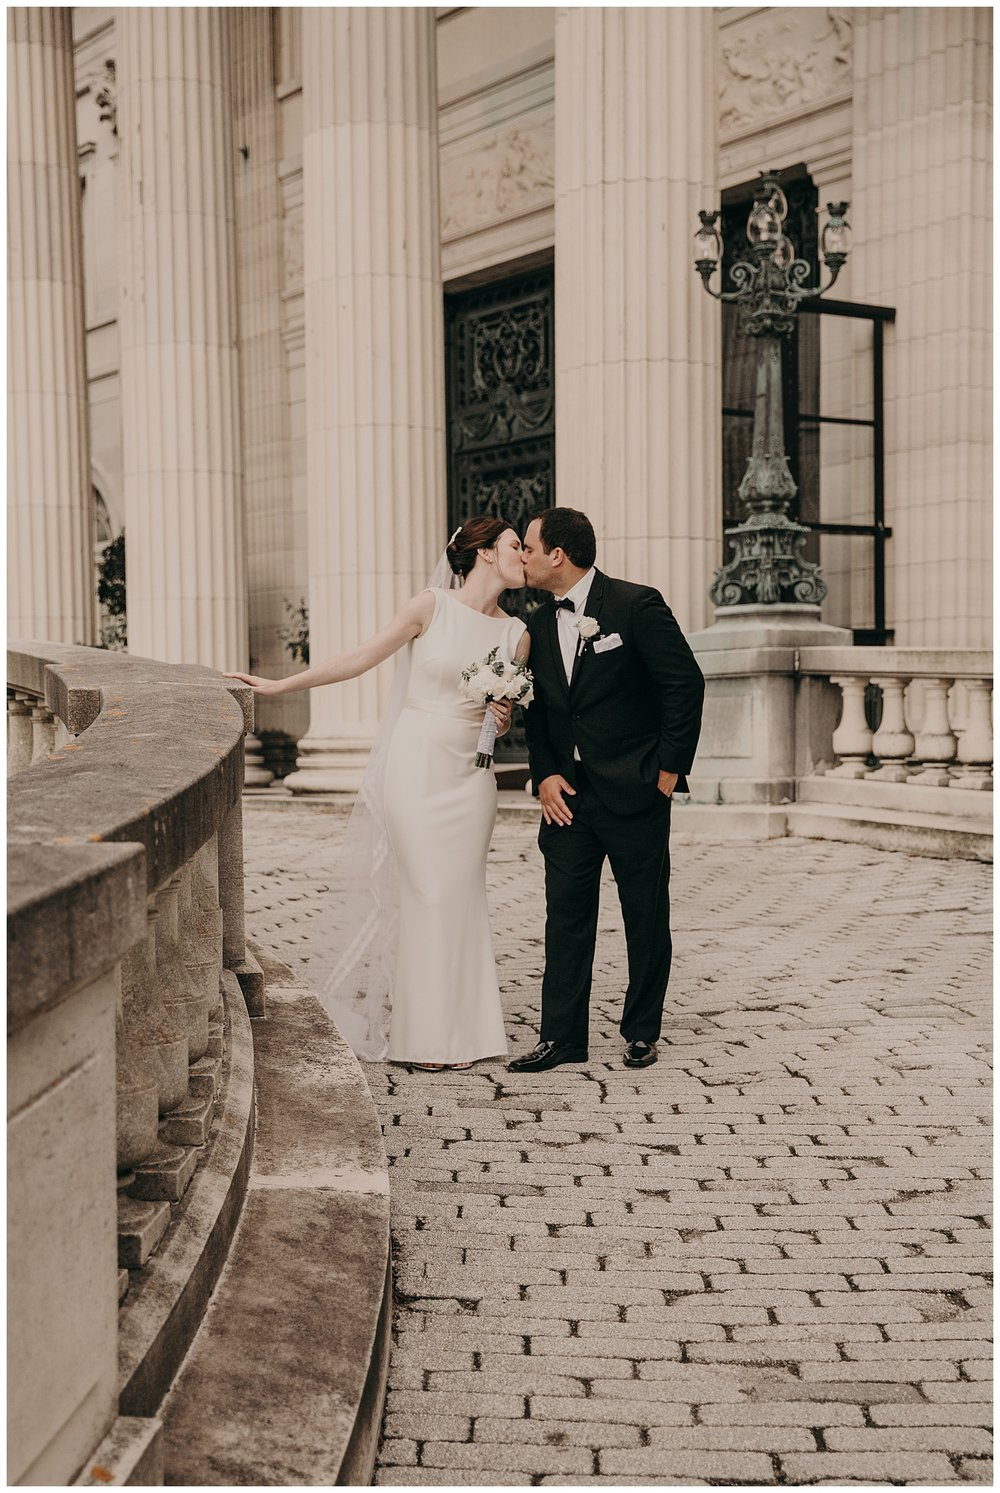 Mike_Kelly_Hotel_Viking_Newport_Rhode_Island_Wedding_020.jpeg